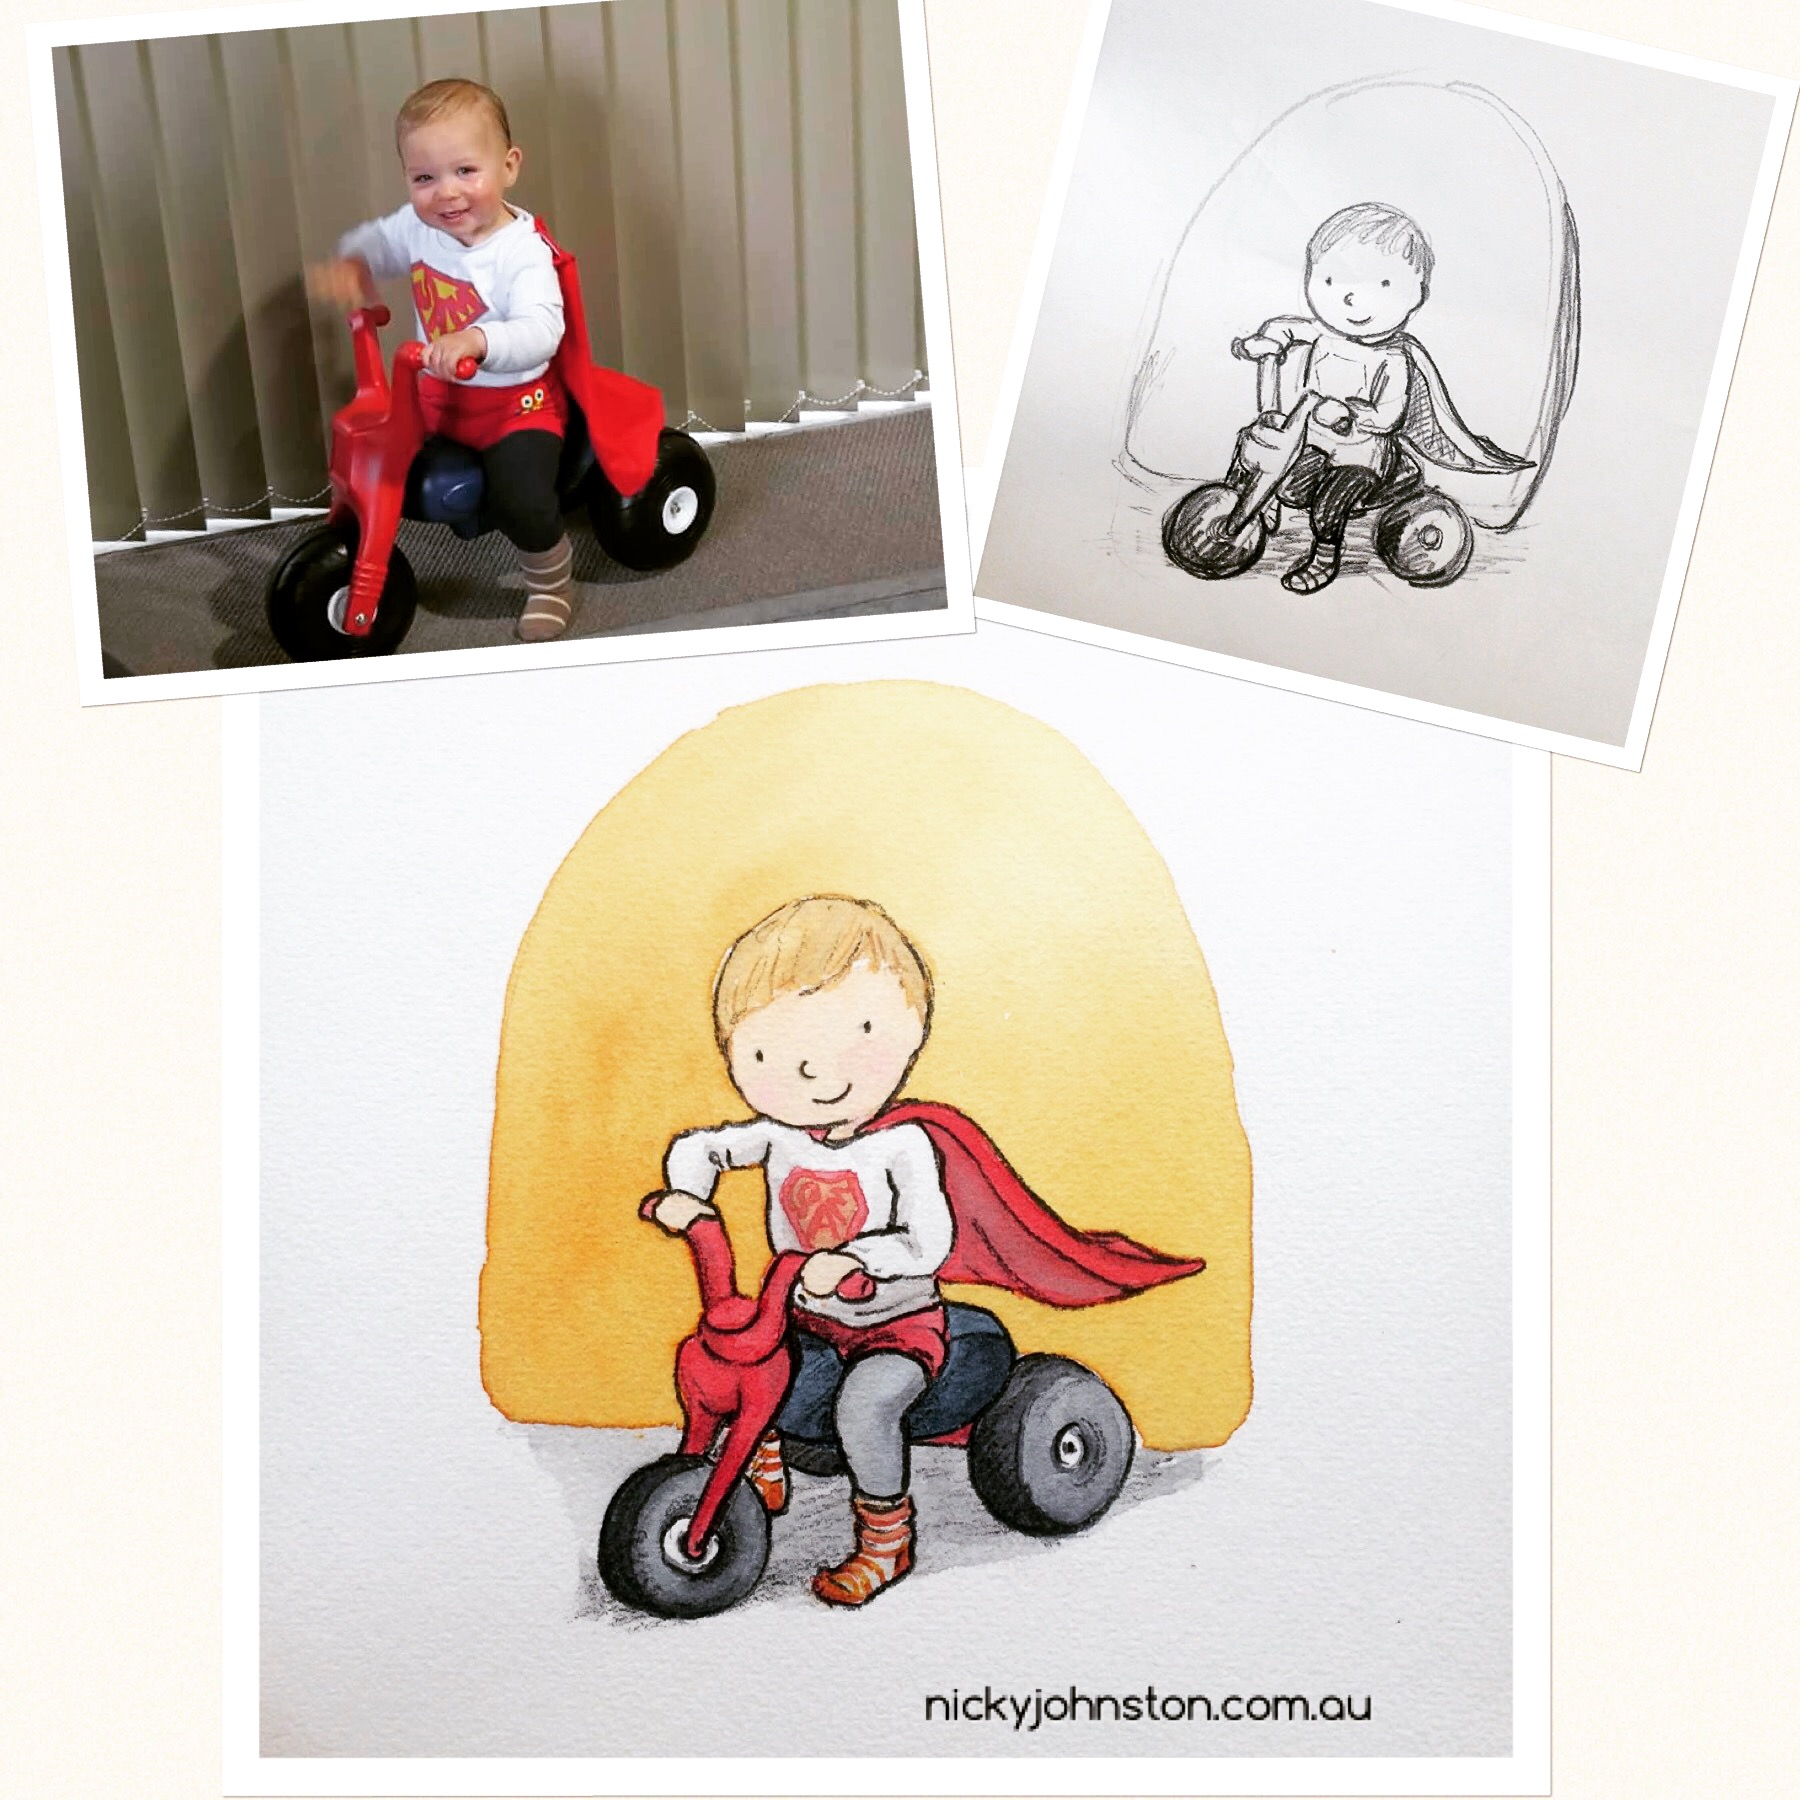 nicky-johnston-illustration-52 week-challenge-childhood-custom-portrait